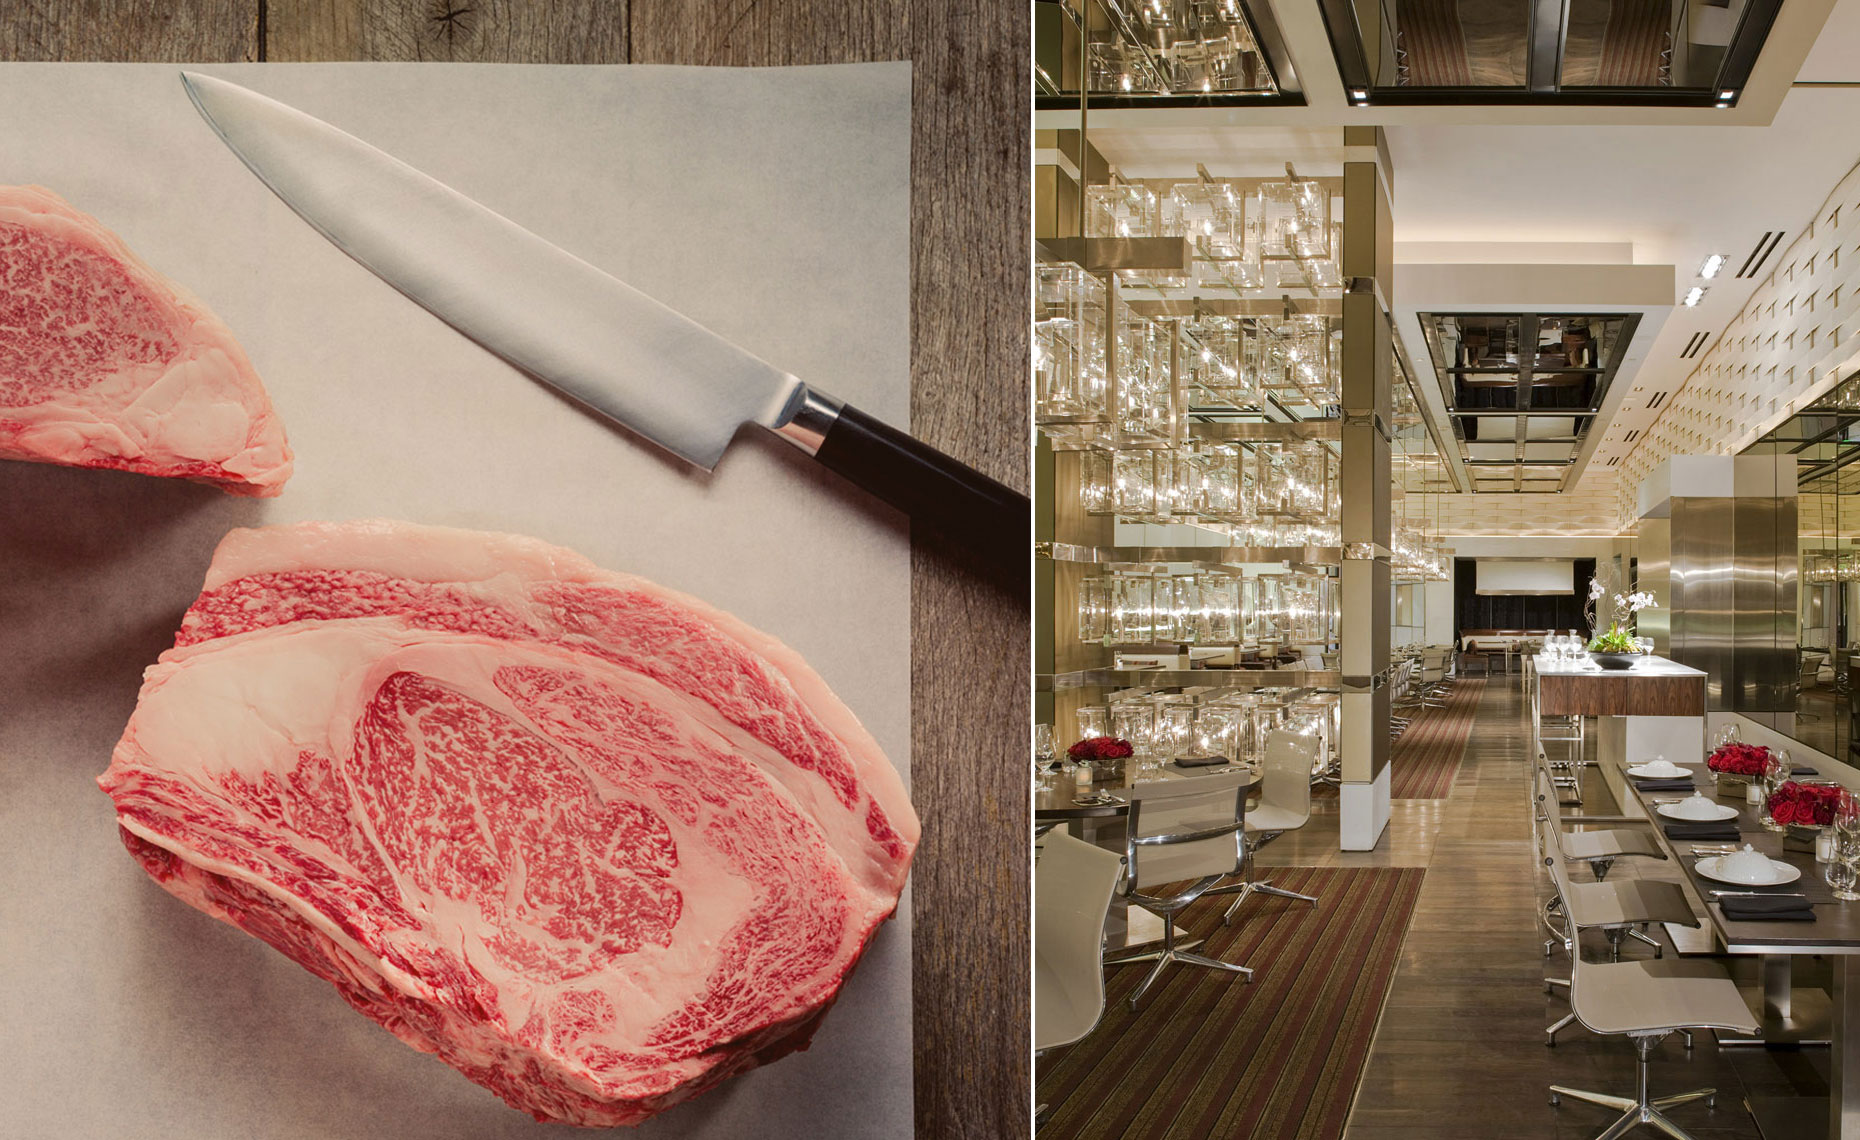 jeff-green-resort-interiors-cut-restaurant-steak